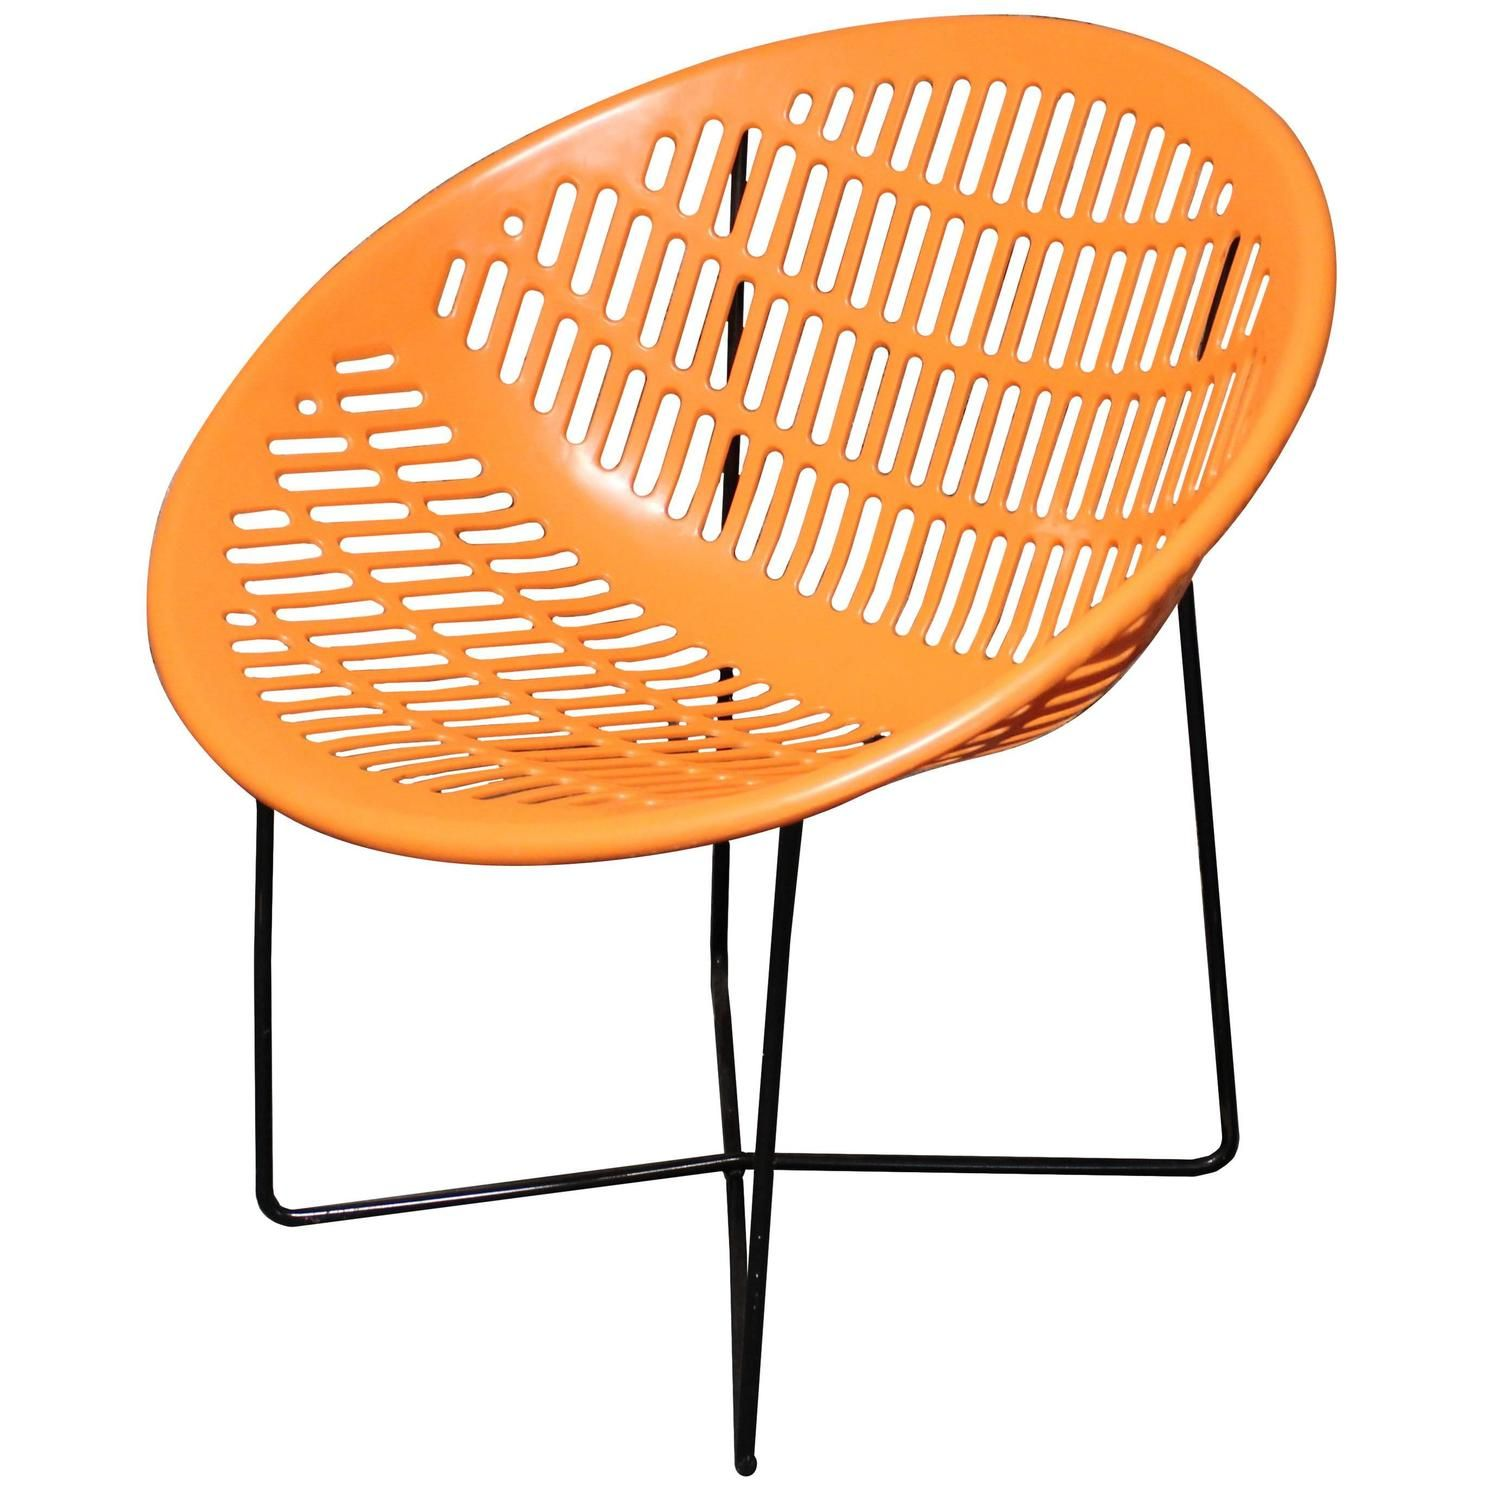 Fabio Fabiano And Michelange Panzini Solair Chair Outdoor Chairs Chair Plastic Injection Molding [ 1500 x 1500 Pixel ]